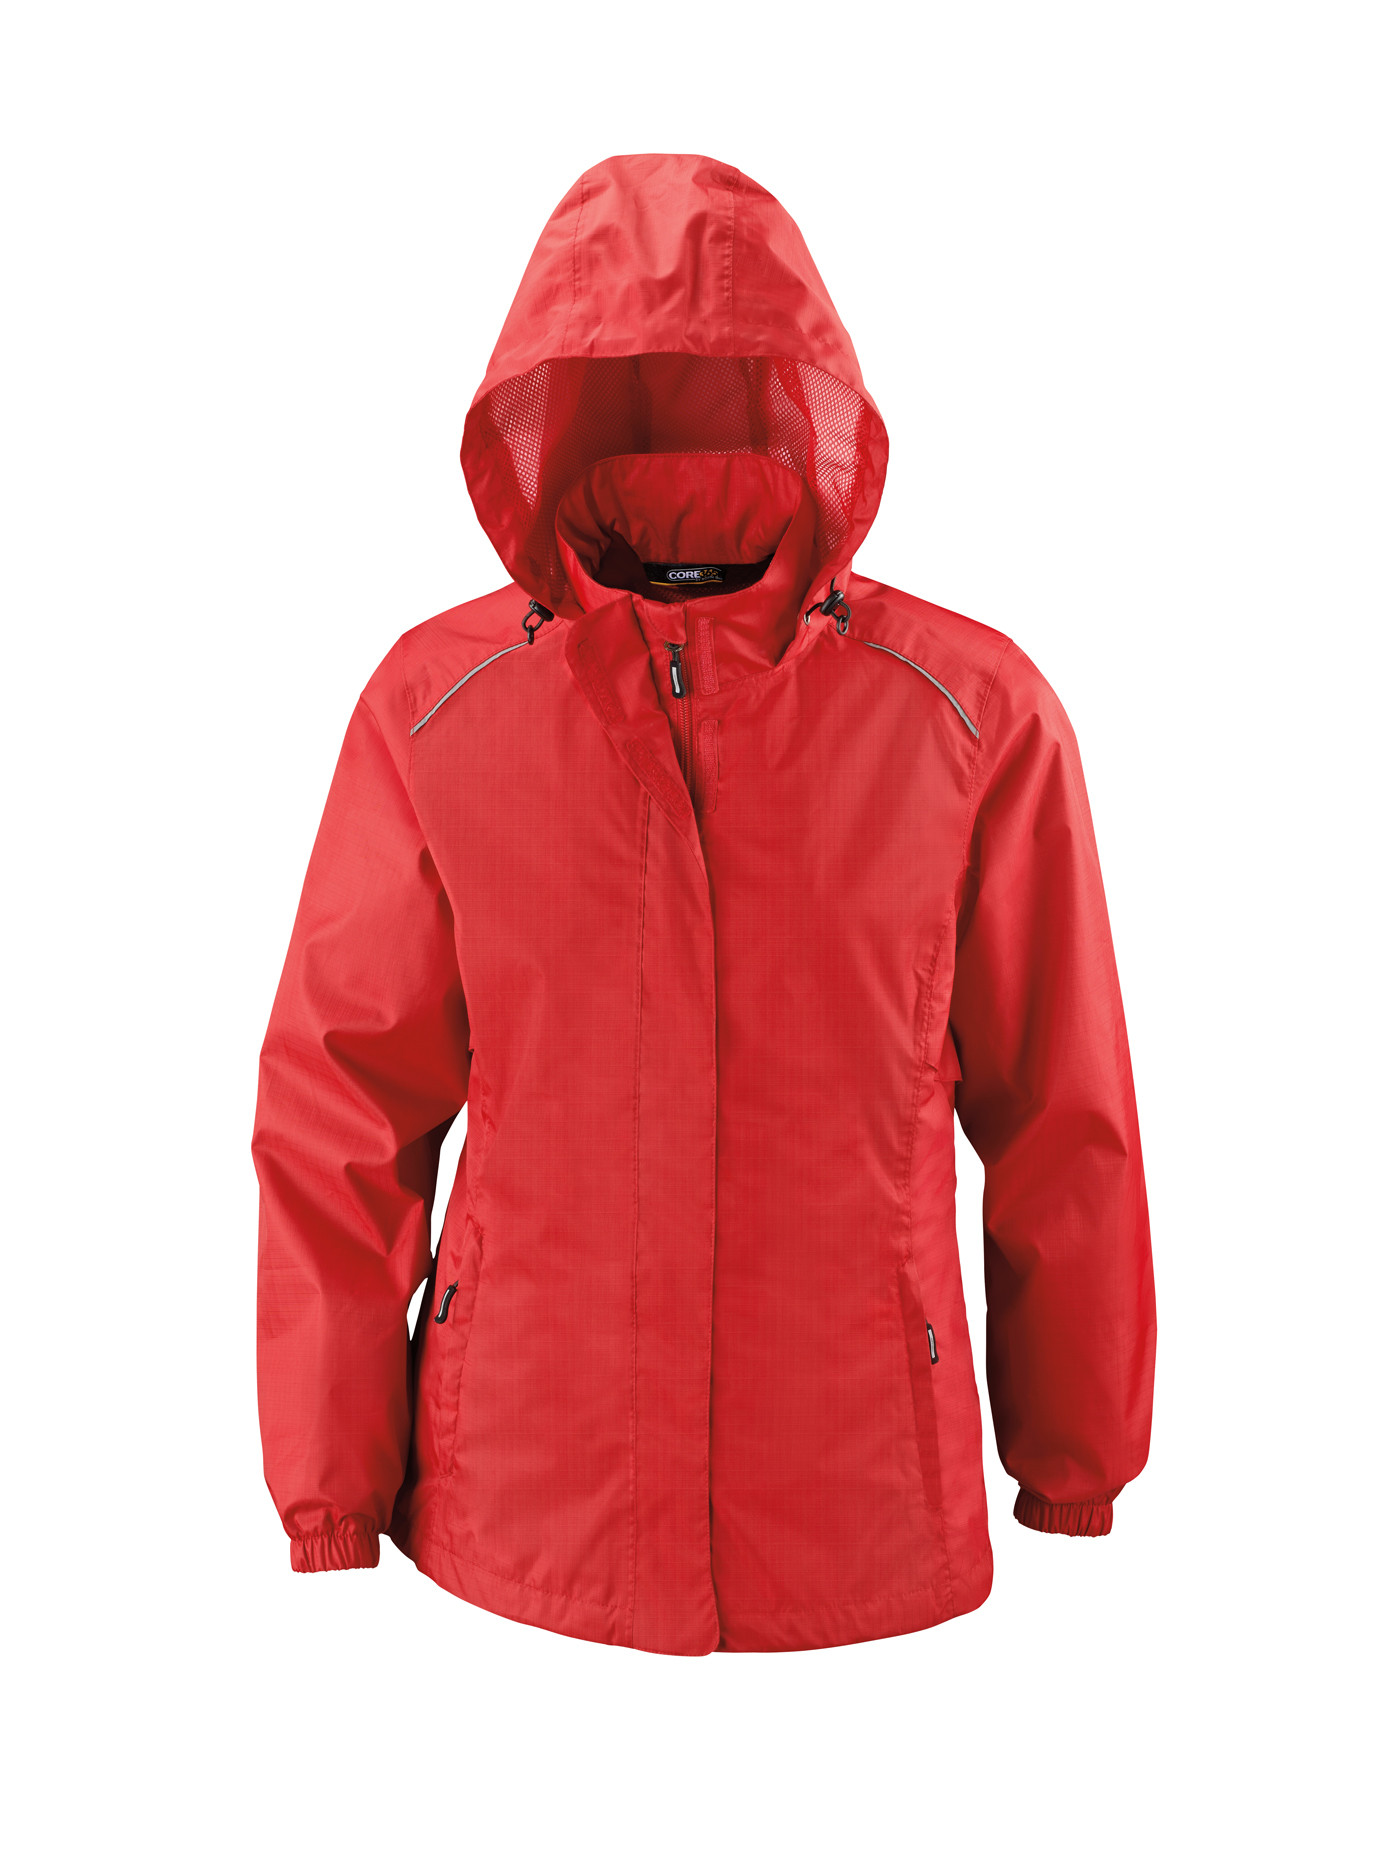 Ash City Core365 78185 - Climate Core365 Ladies' Seam-Sealed Lightweight Variegated Ripstop Jacket